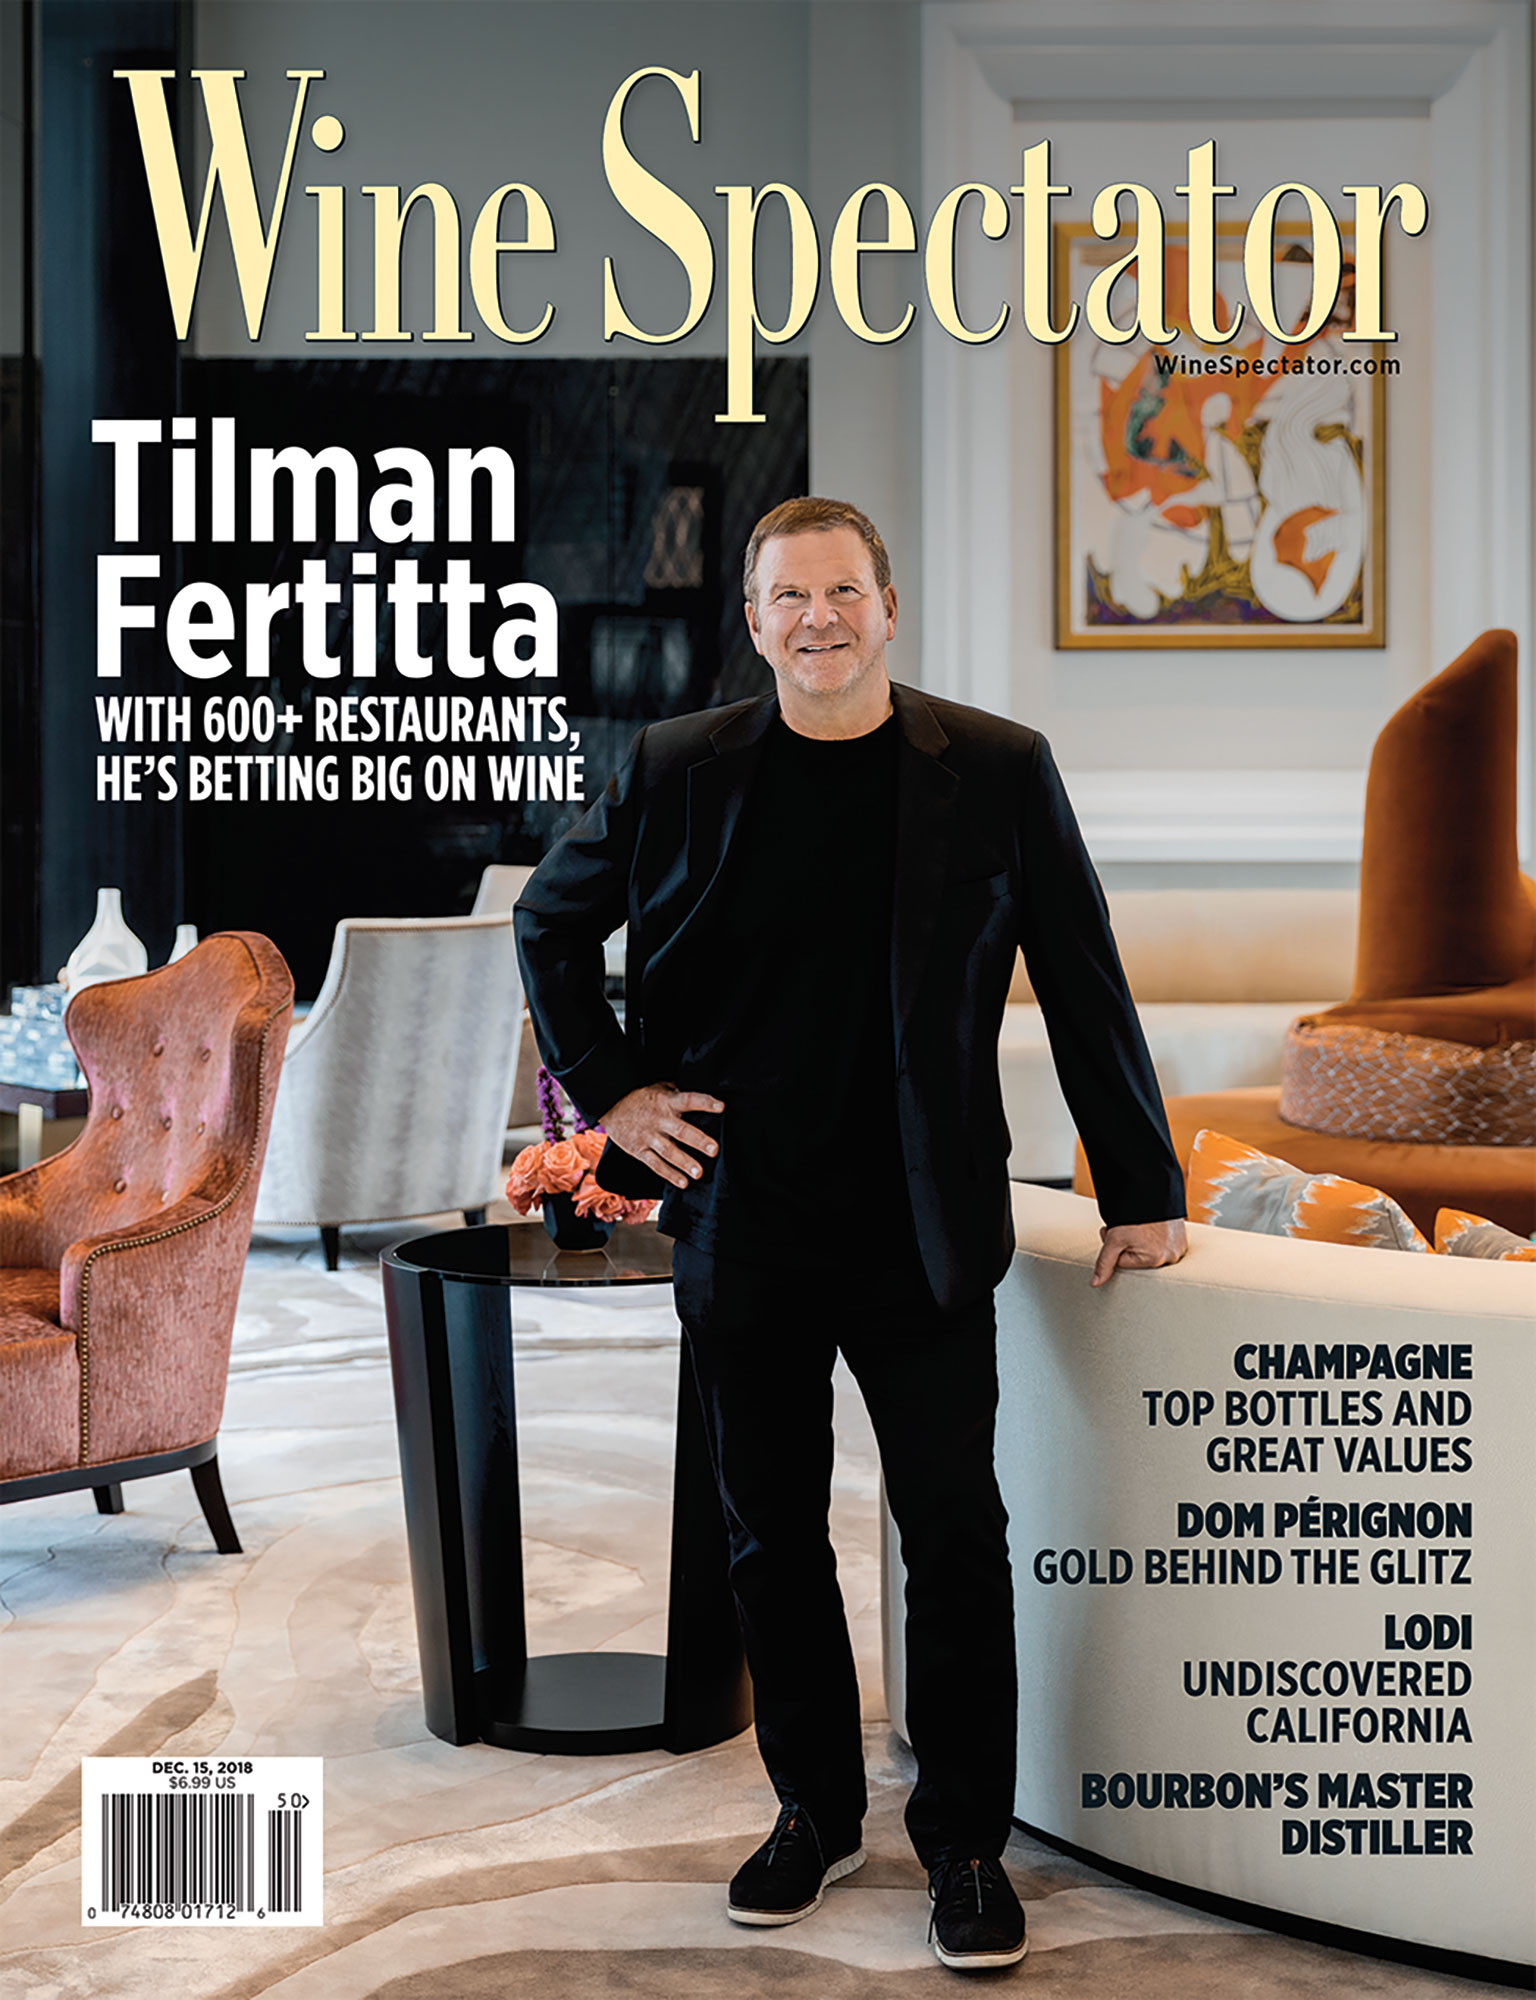 Wine Spectator - Magazine Photography - Julie Soefer Photography